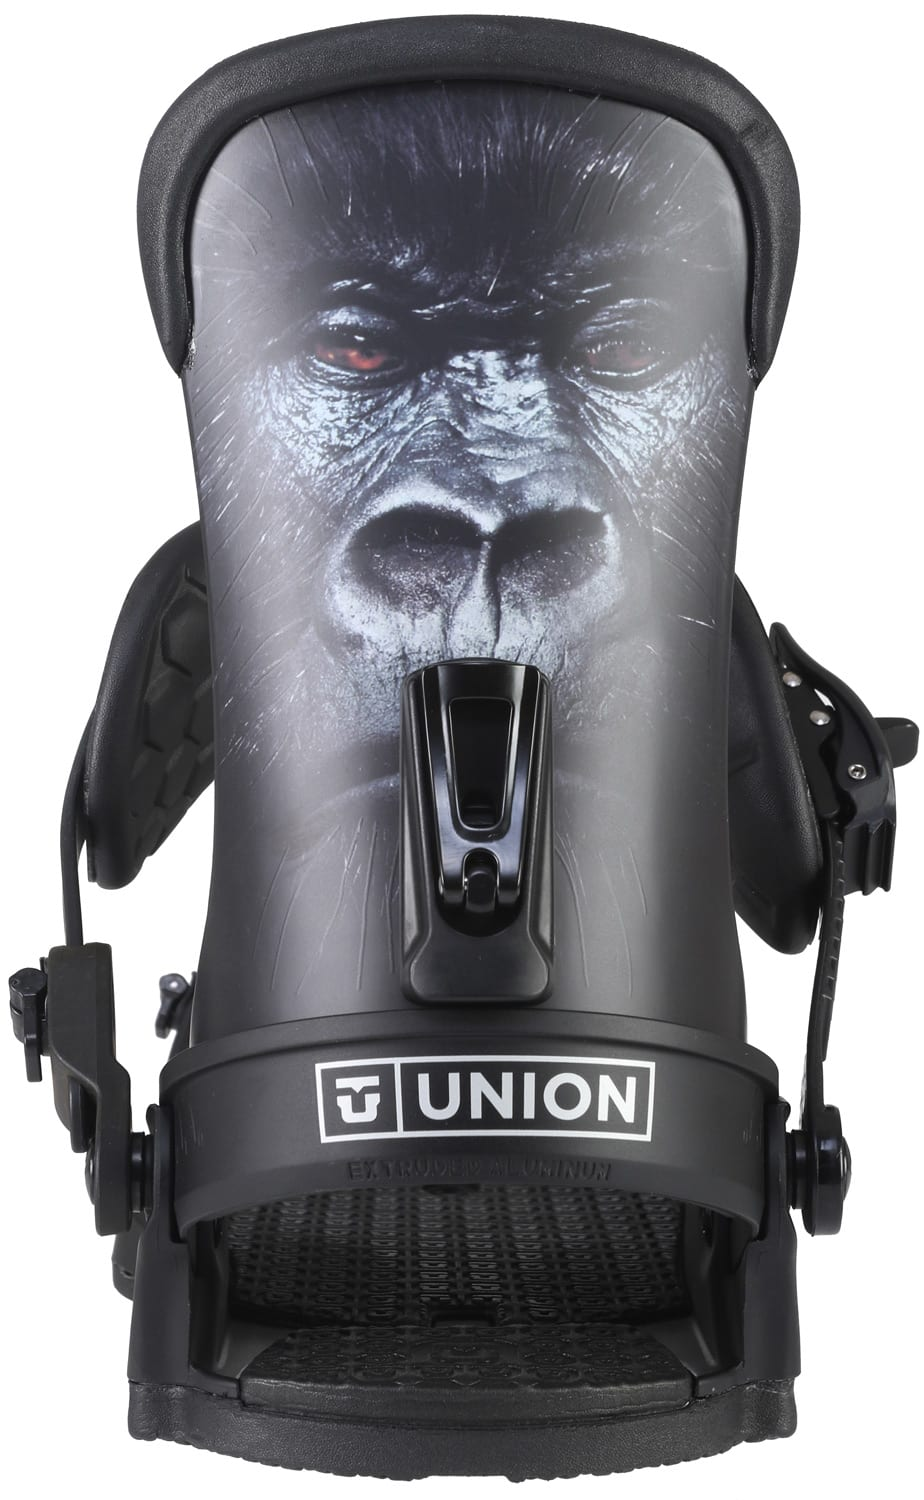 Union Superforce Gorilla Snowboard Bindings